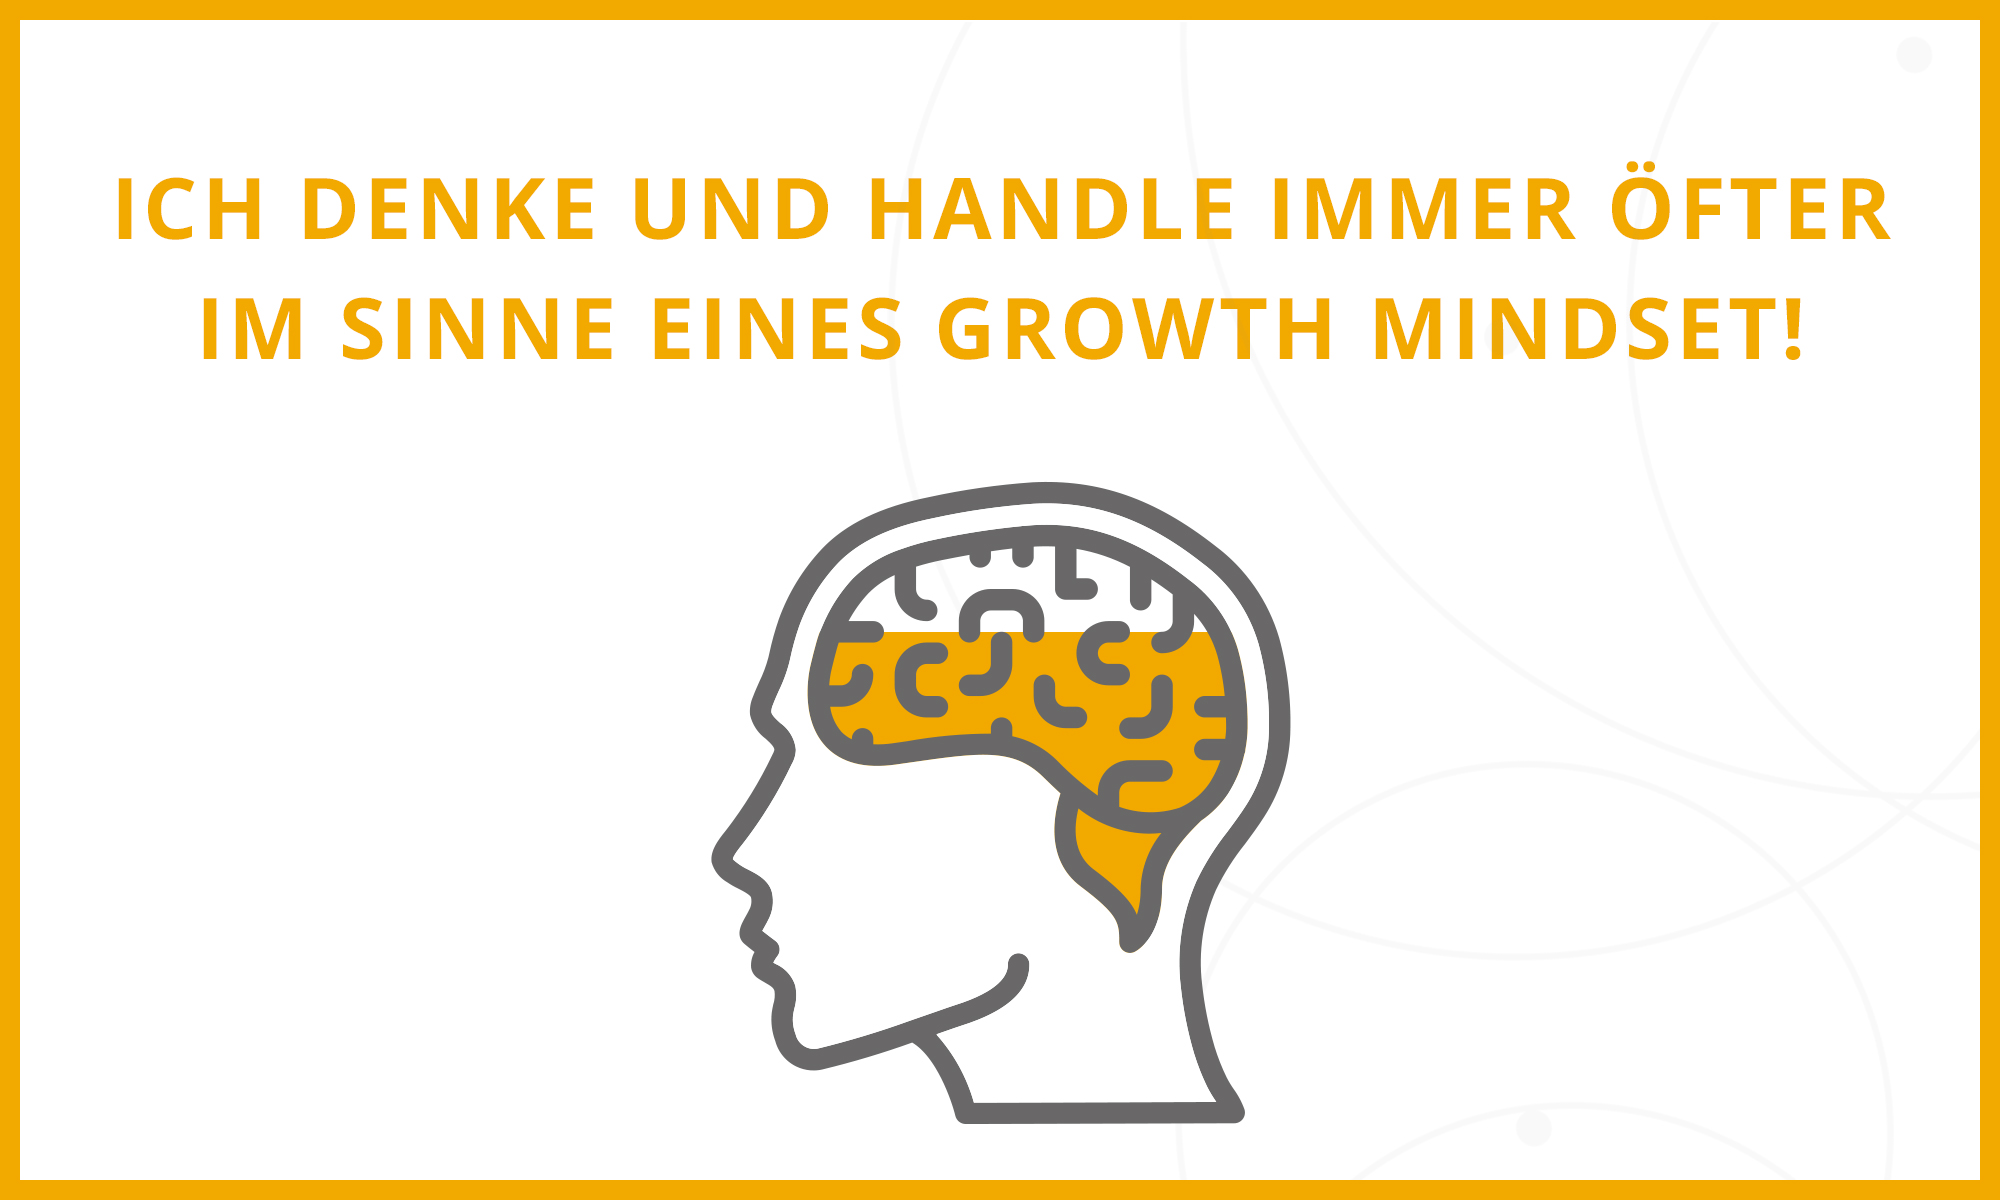 joblocal karriere Game Growth Mindset Lösung 2